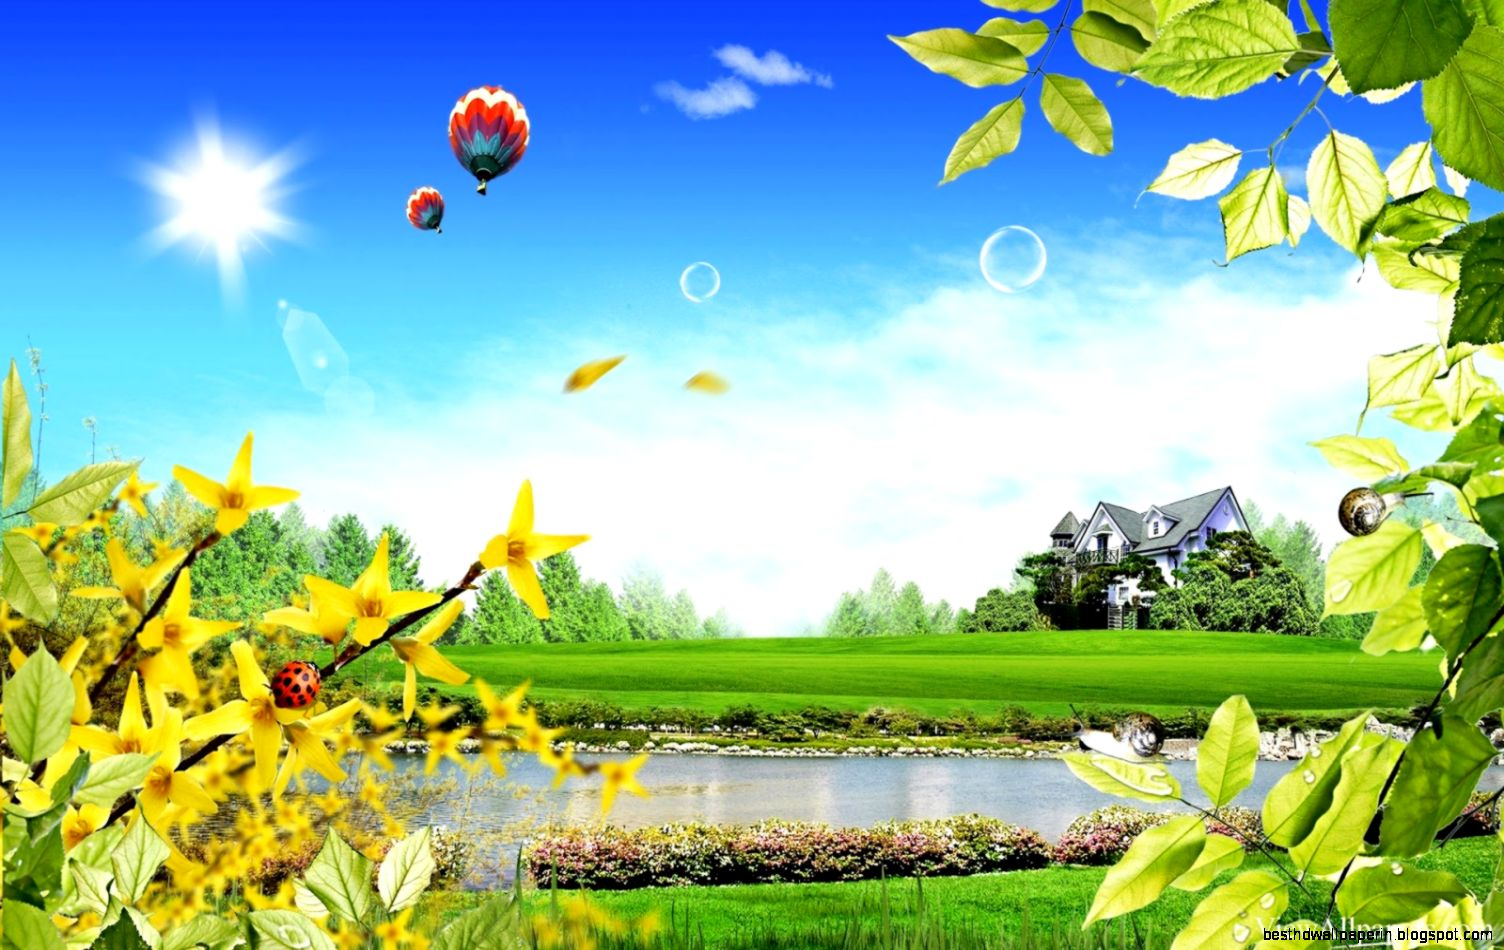 3d nature wallpapers free background download best hd for 3d nature wallpaper for home